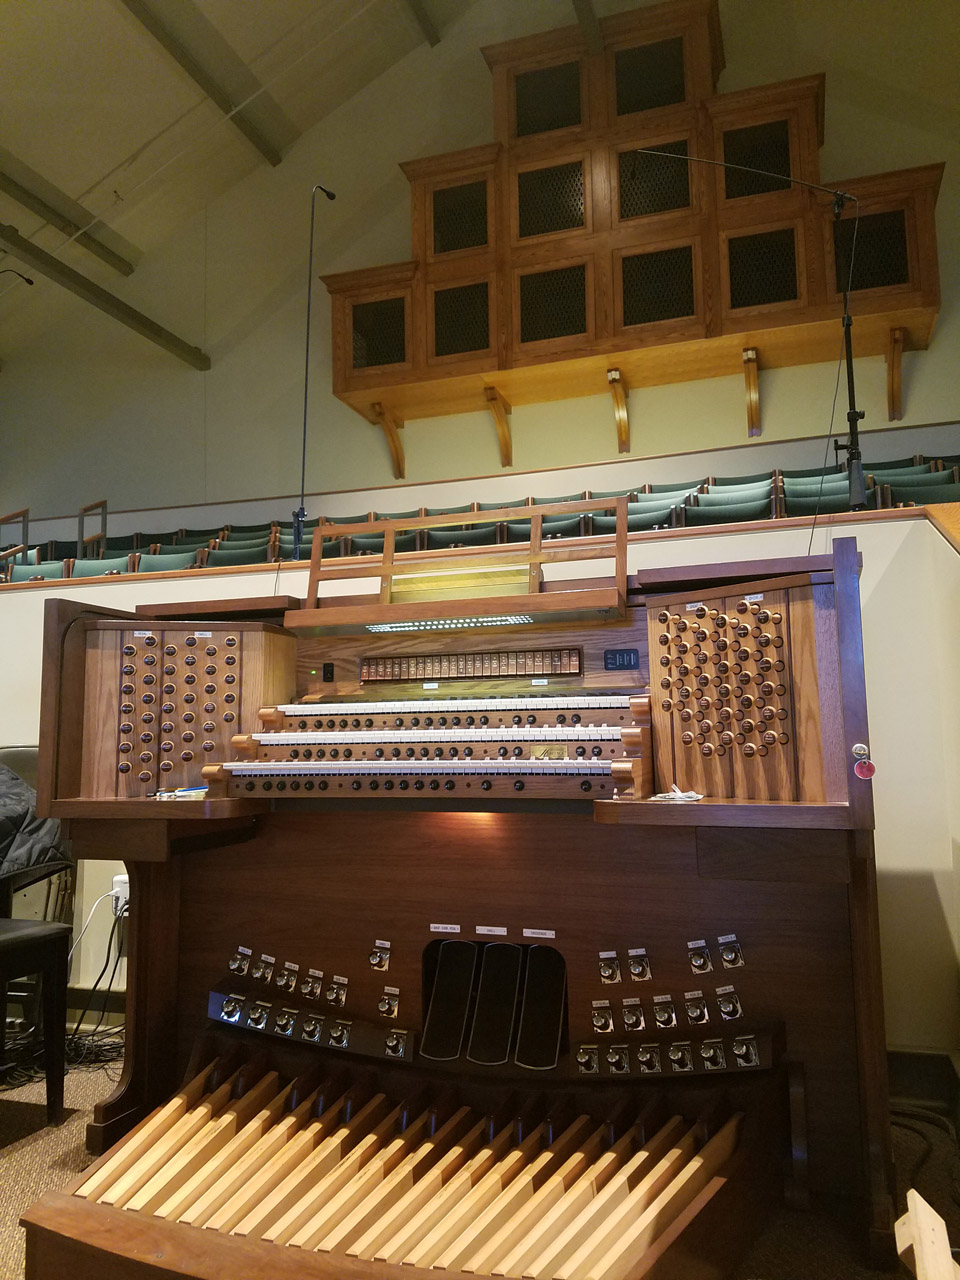 64 Stop Allen Organ with Heritage Package, St. John and Paul Catholic Church, Swickley PA